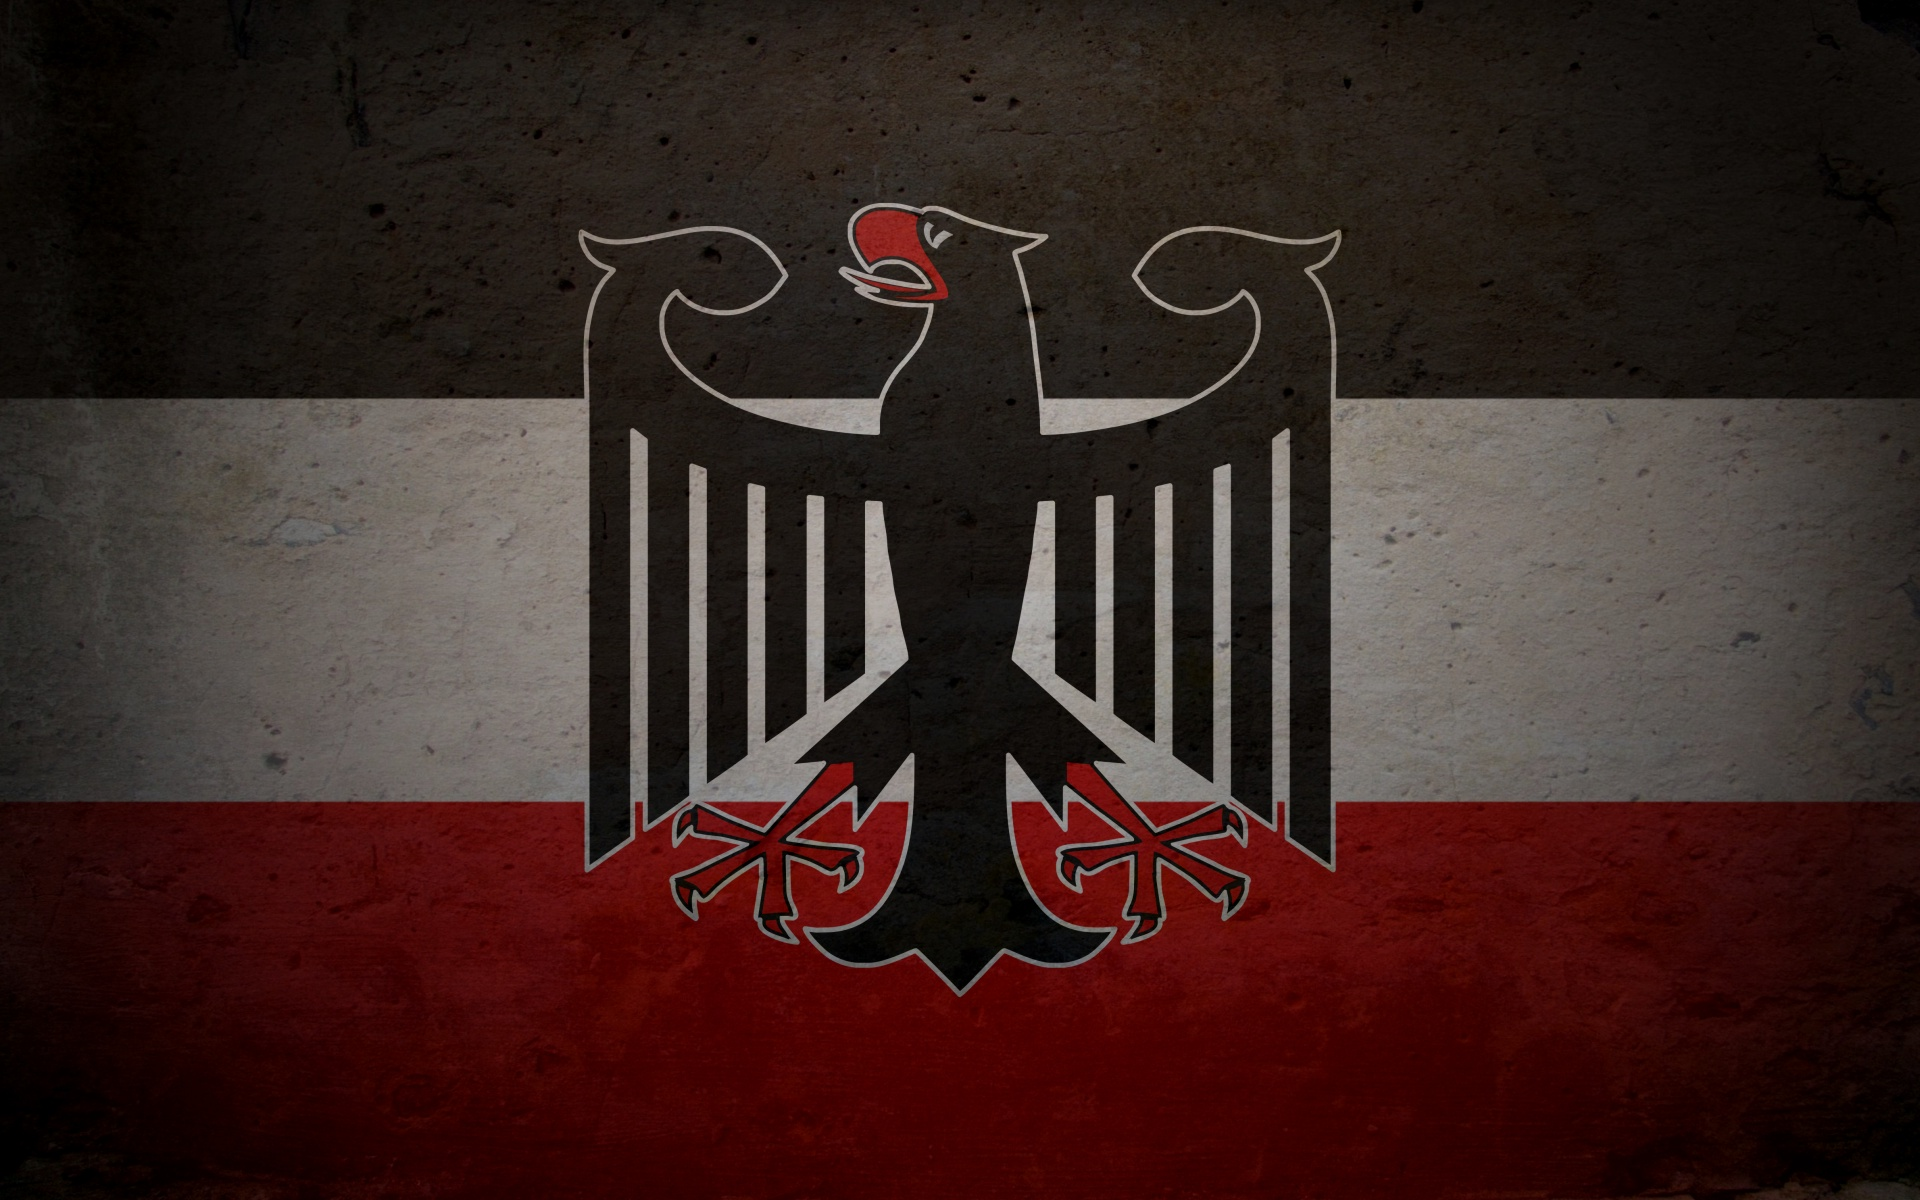 german eagle wallpaper - photo #42